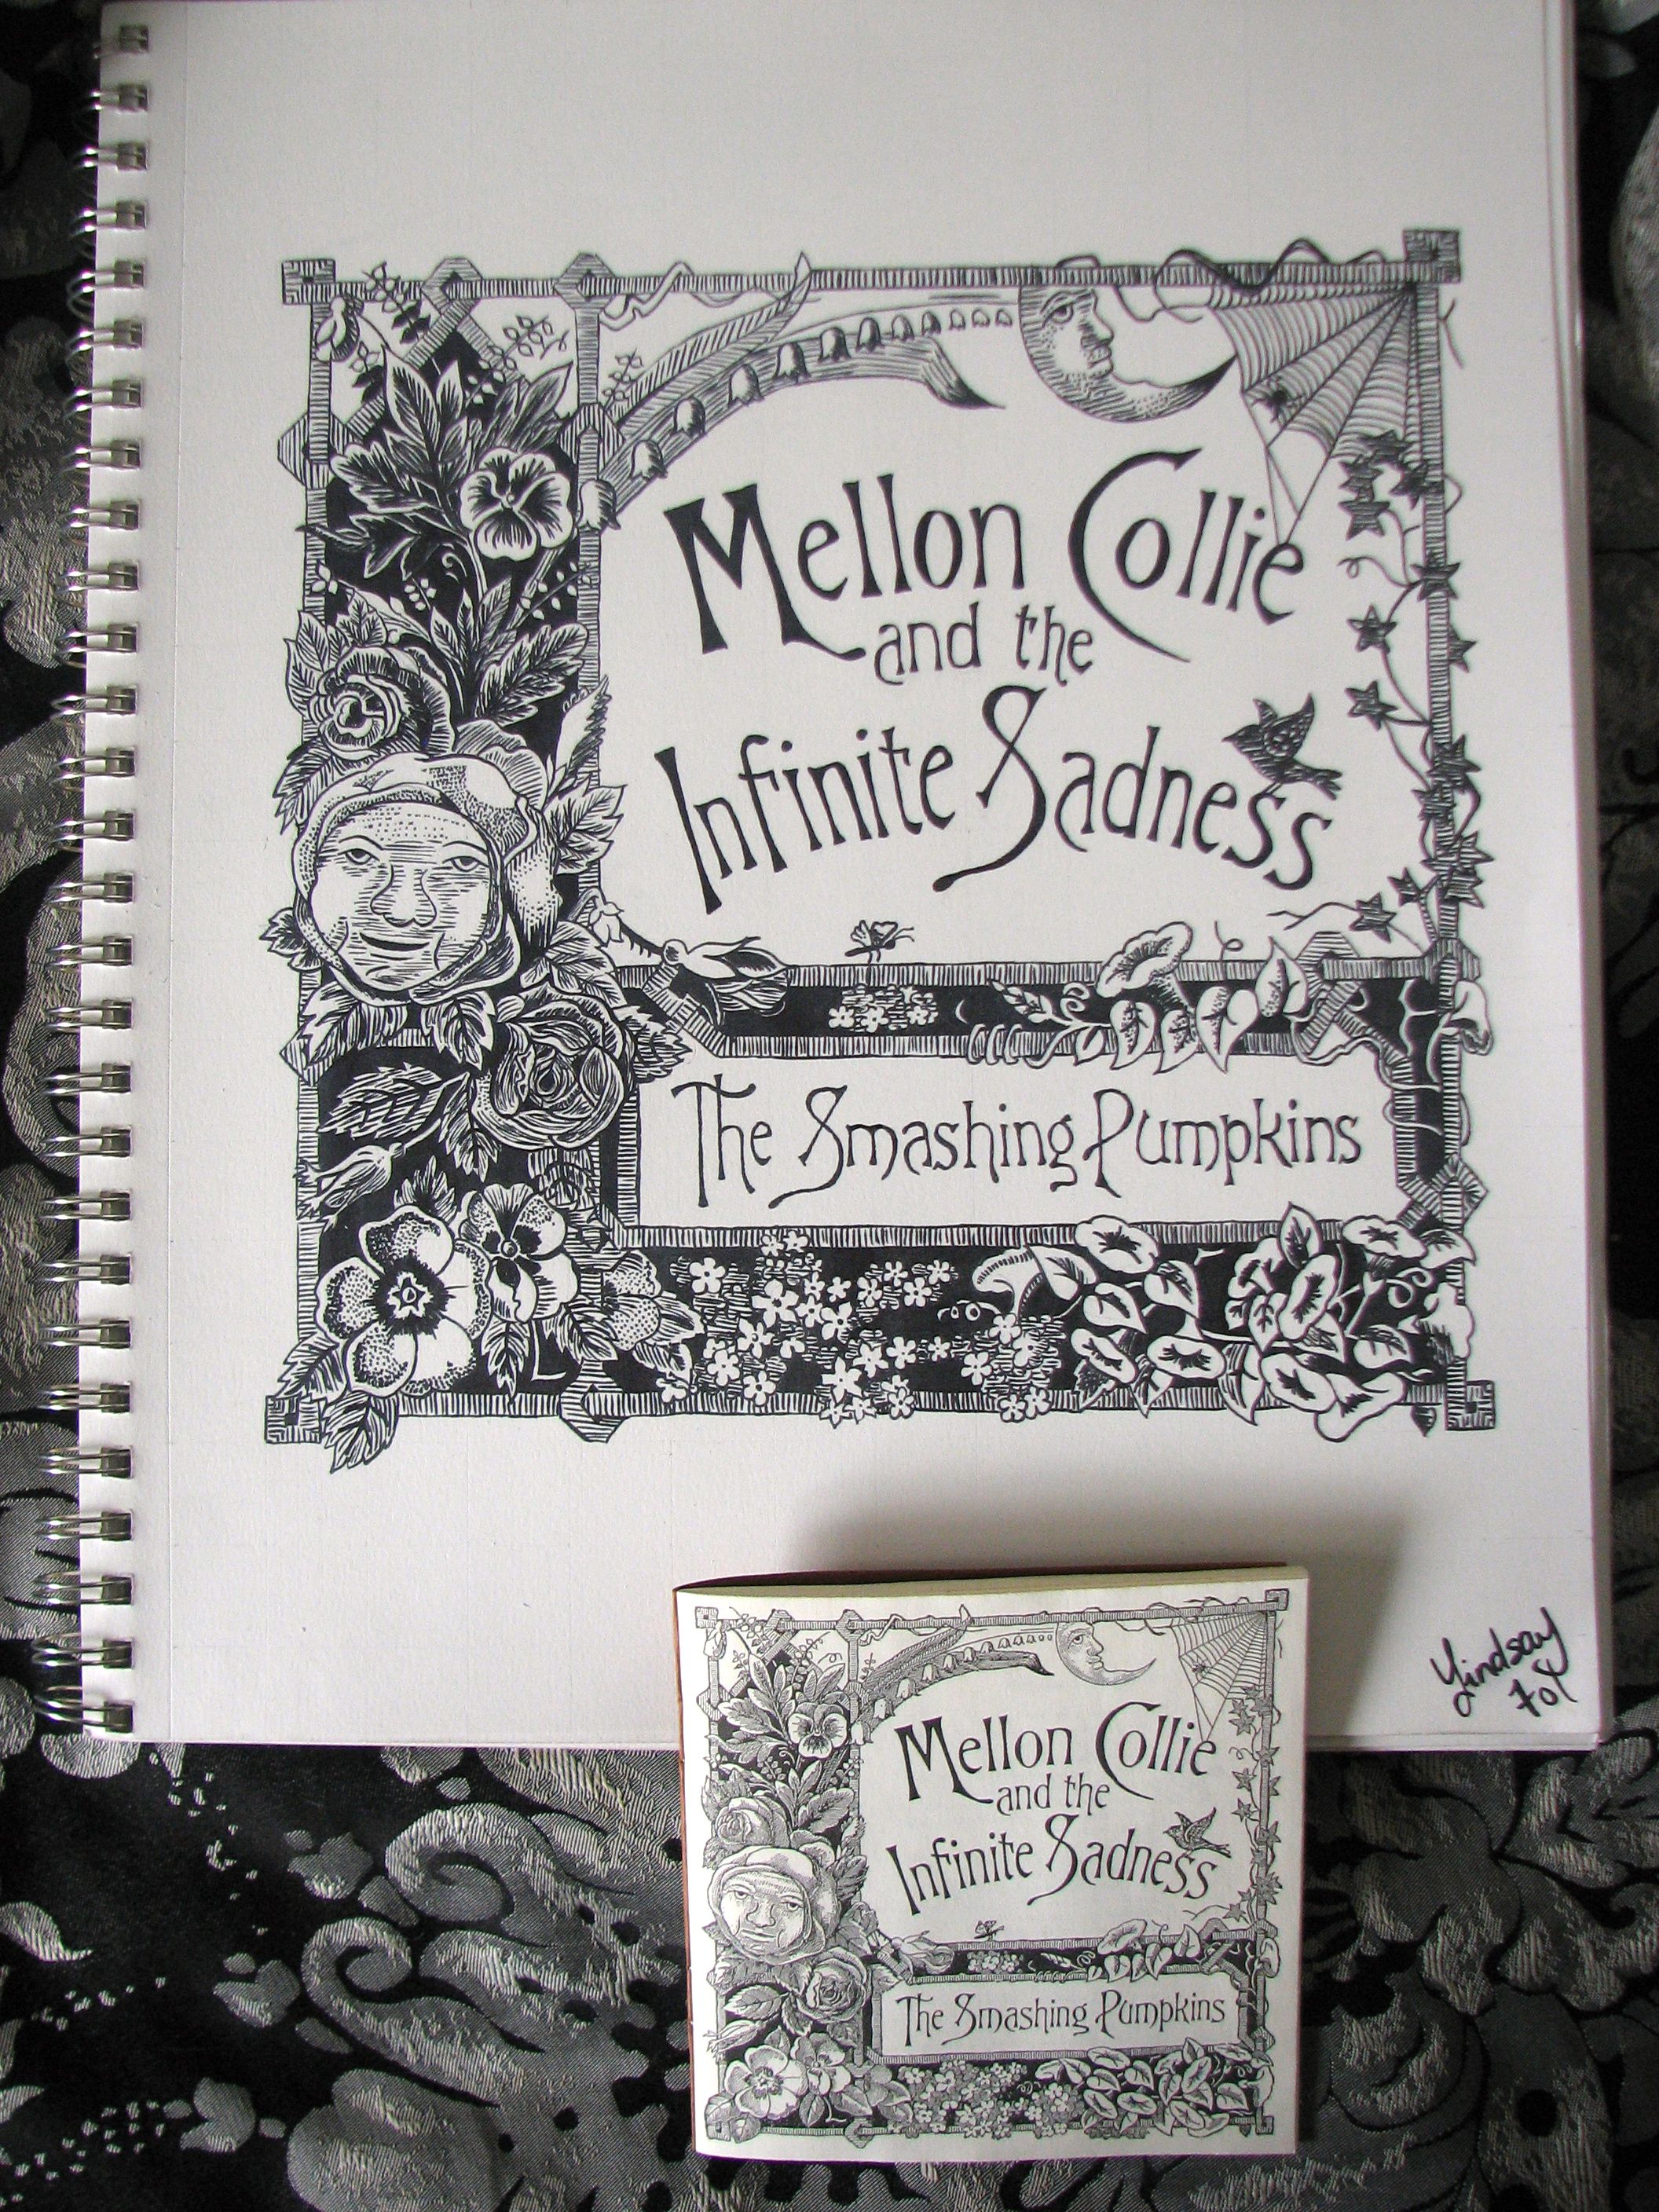 Awesome This Person Copied This Drawing From The Mellon Collie And